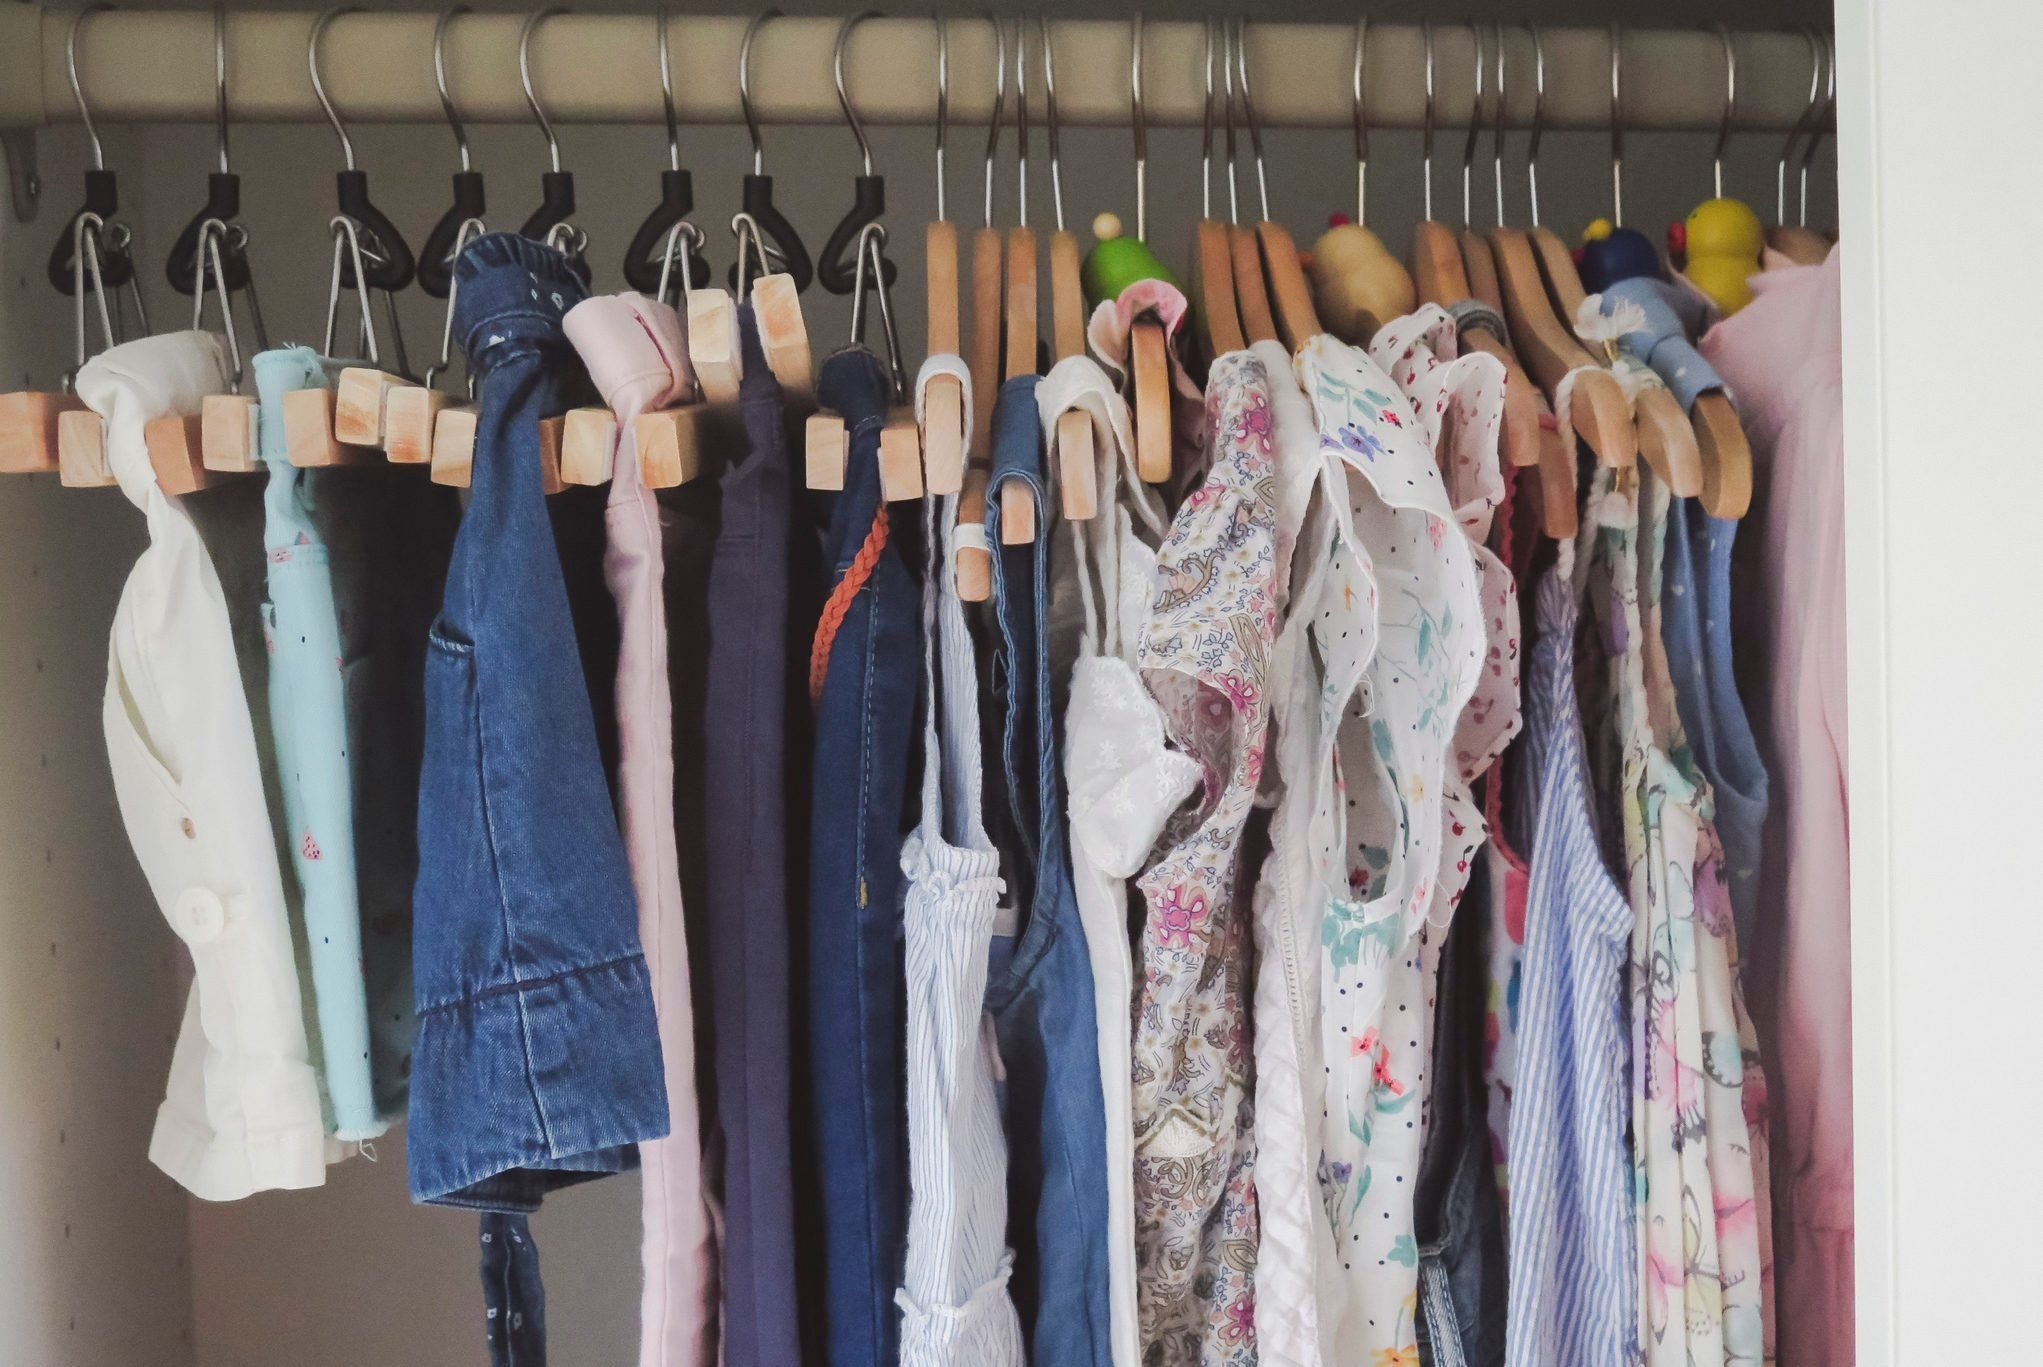 Girl clothes inside the wardrobe